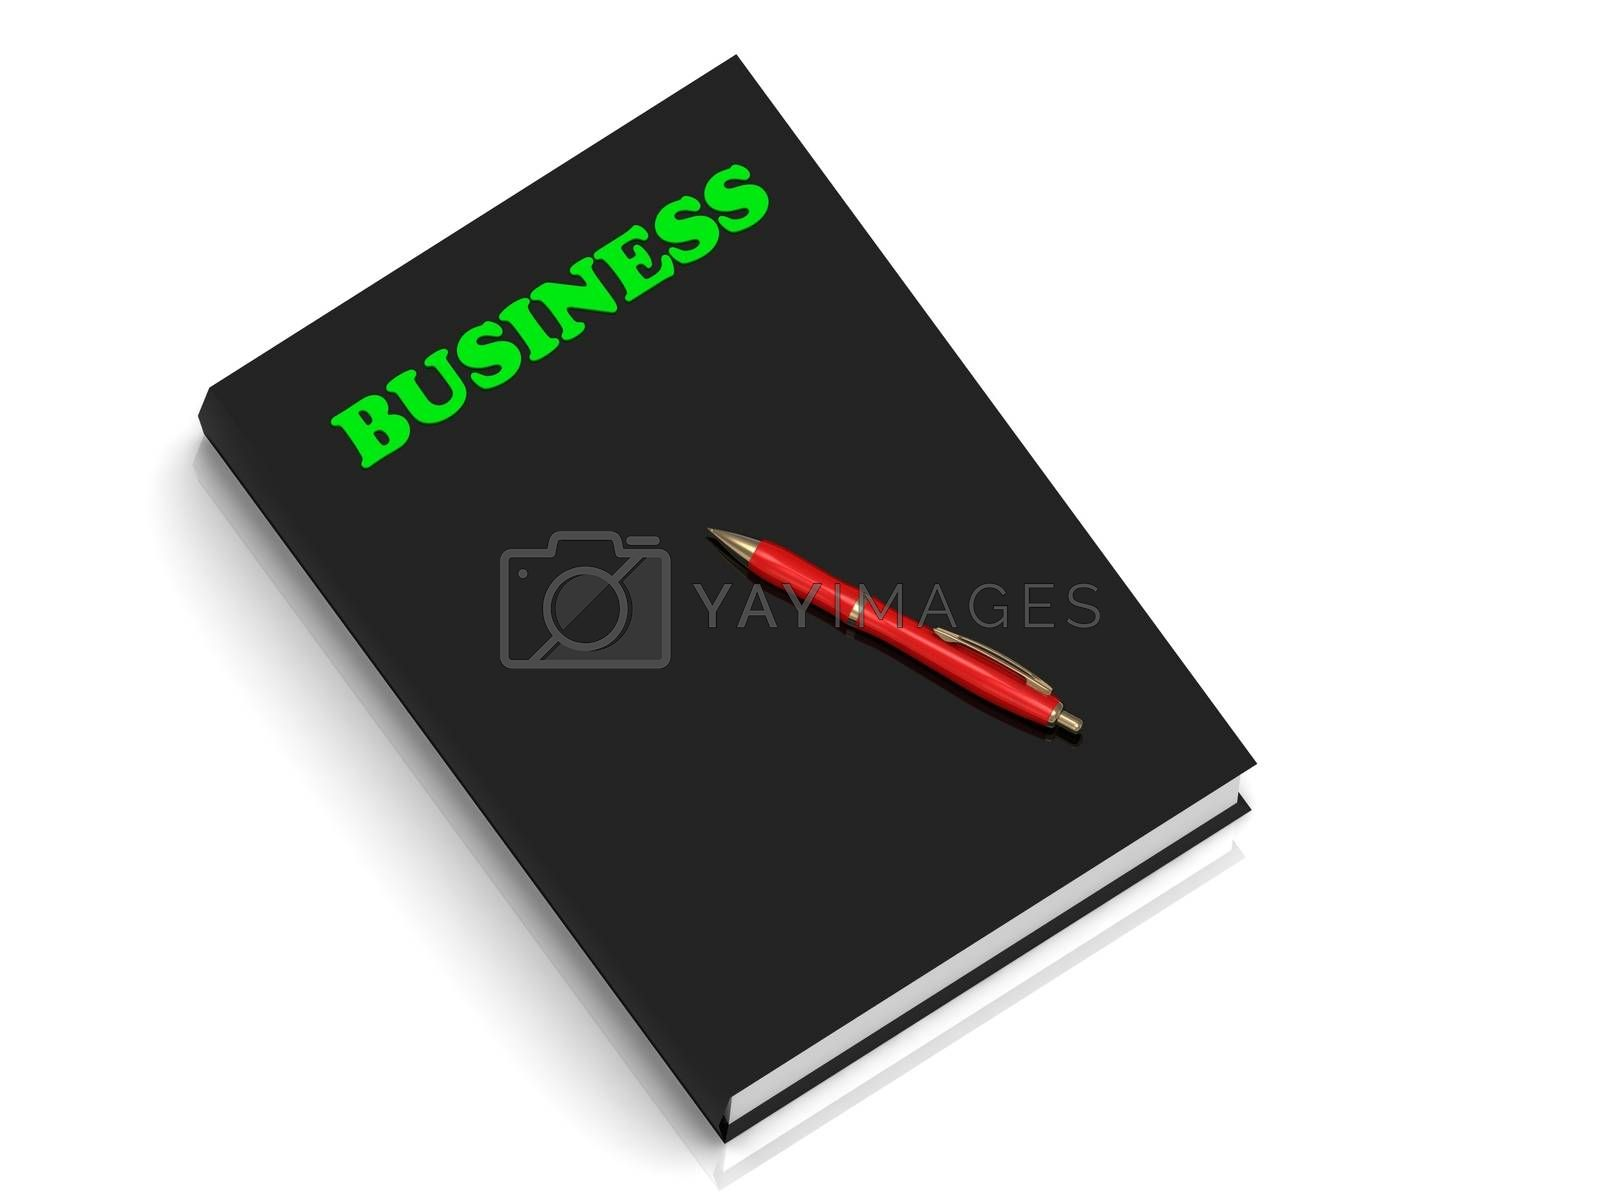 BUSINESS- inscription of green letters on black book on white background